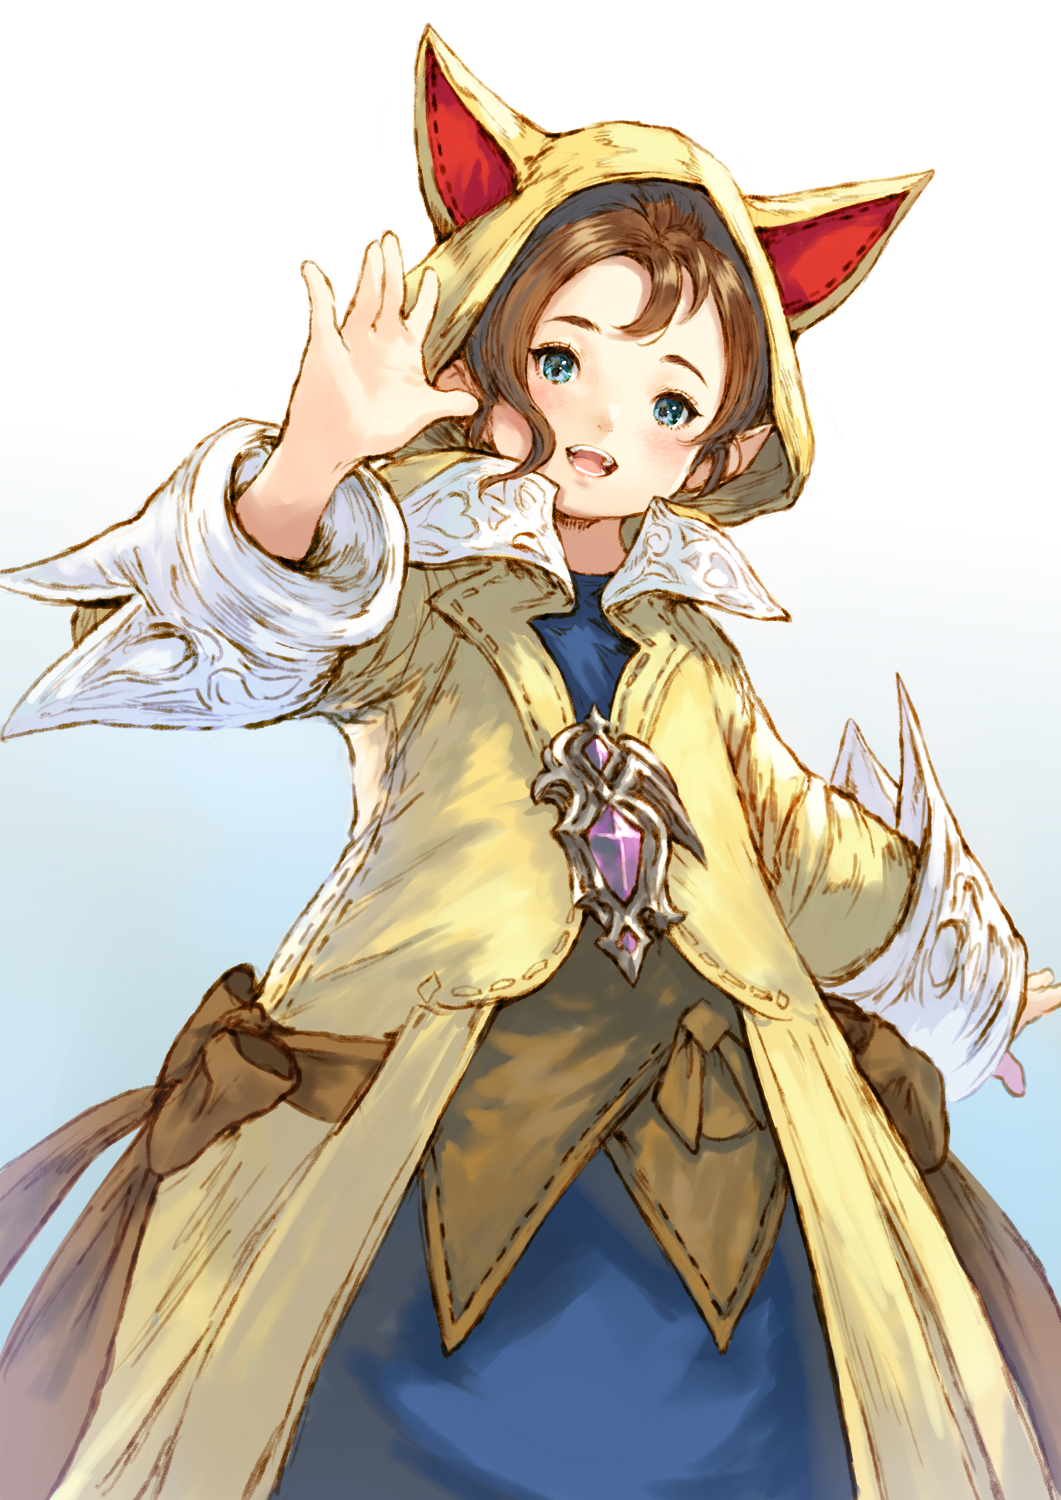 1girl animal_hood blue_eyes brown_hair final_fantasy final_fantasy_xiv gradient gradient_background highres hood krile_mayer_baldesion_(ff14) lalafell looking_at_viewer makimura_shunsuke open_mouth pointy_ears short_hair solo standing waving